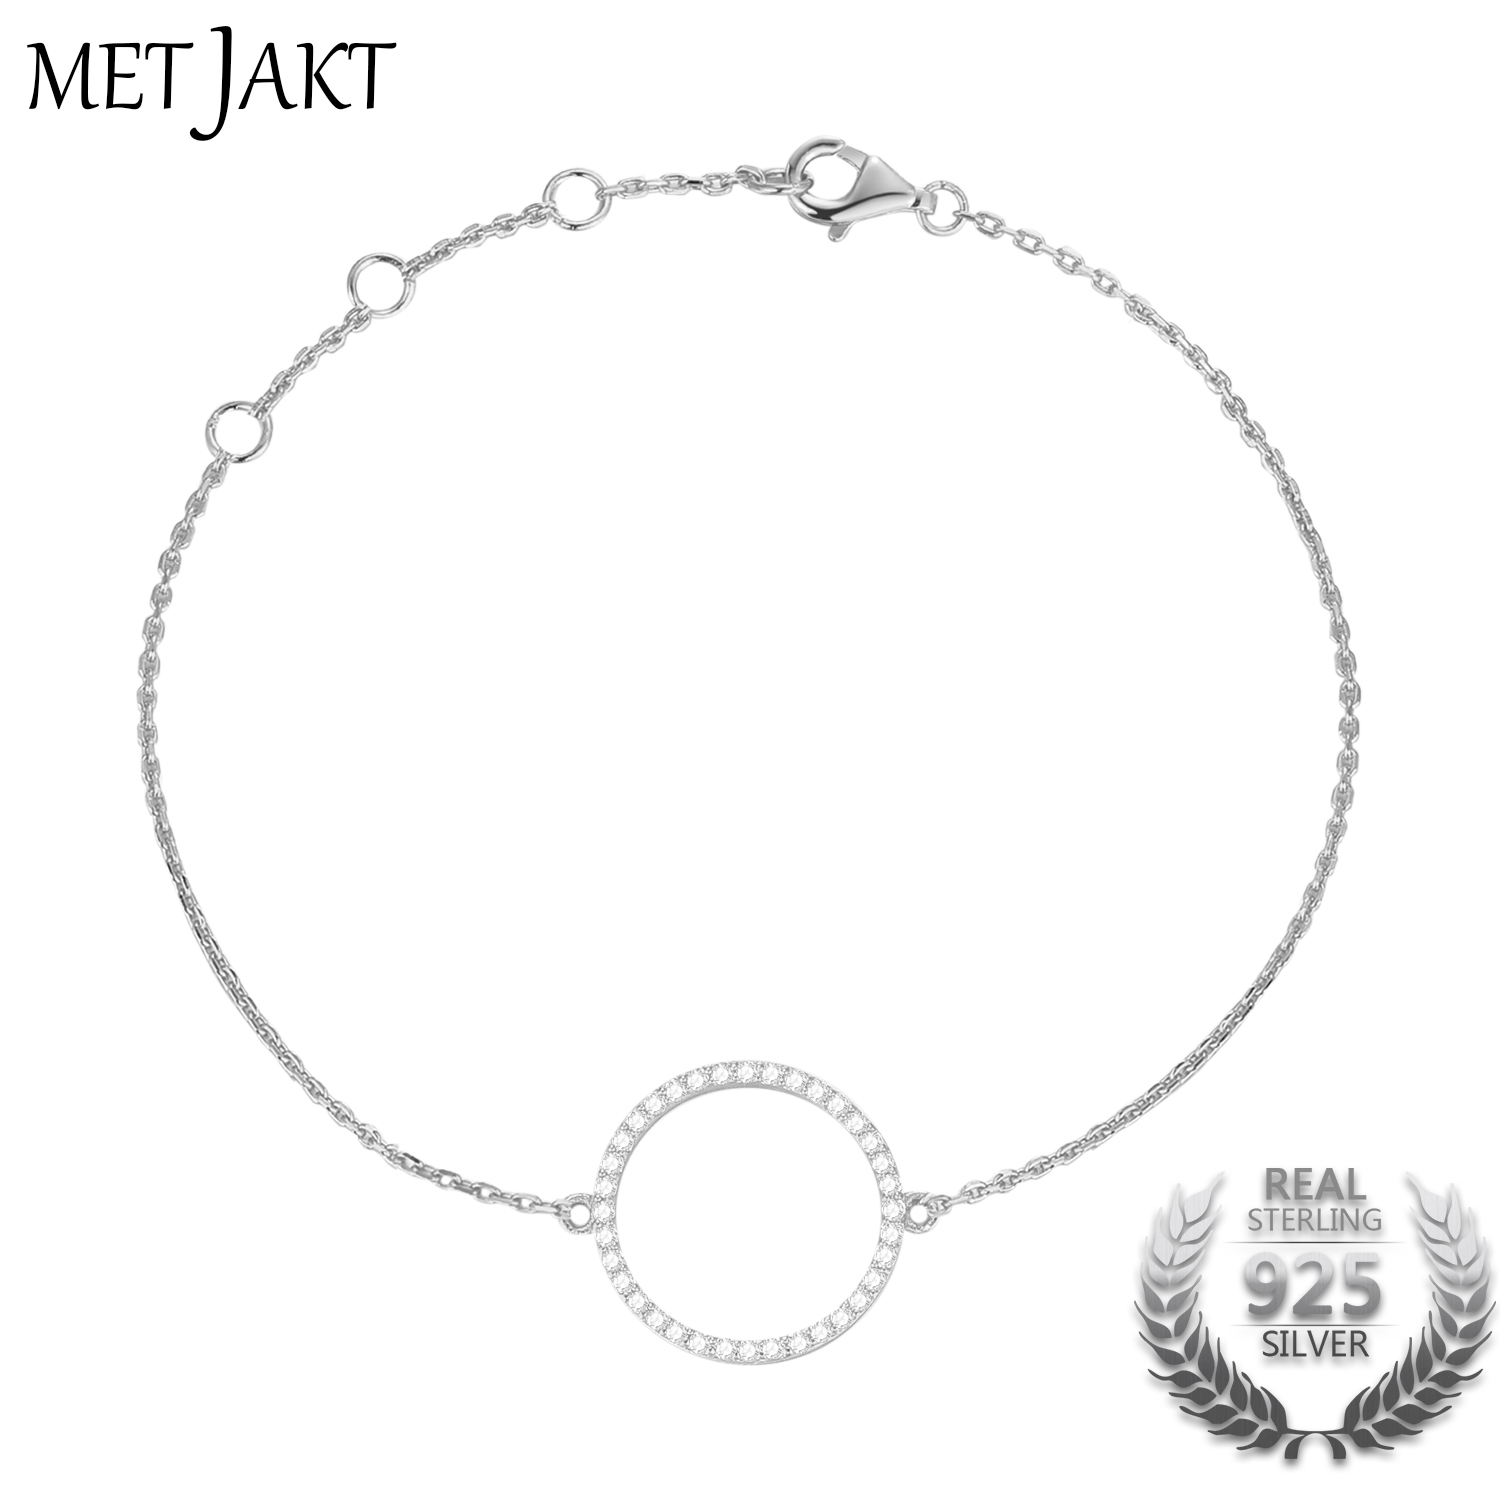 MetJakt 14k Rose Gold Color 925 Sterling Silver Hollow Out Circle Charm Bracelet with AAA+ Cubic Zirconia for Women Fine JewelryMetJakt 14k Rose Gold Color 925 Sterling Silver Hollow Out Circle Charm Bracelet with AAA+ Cubic Zirconia for Women Fine Jewelry